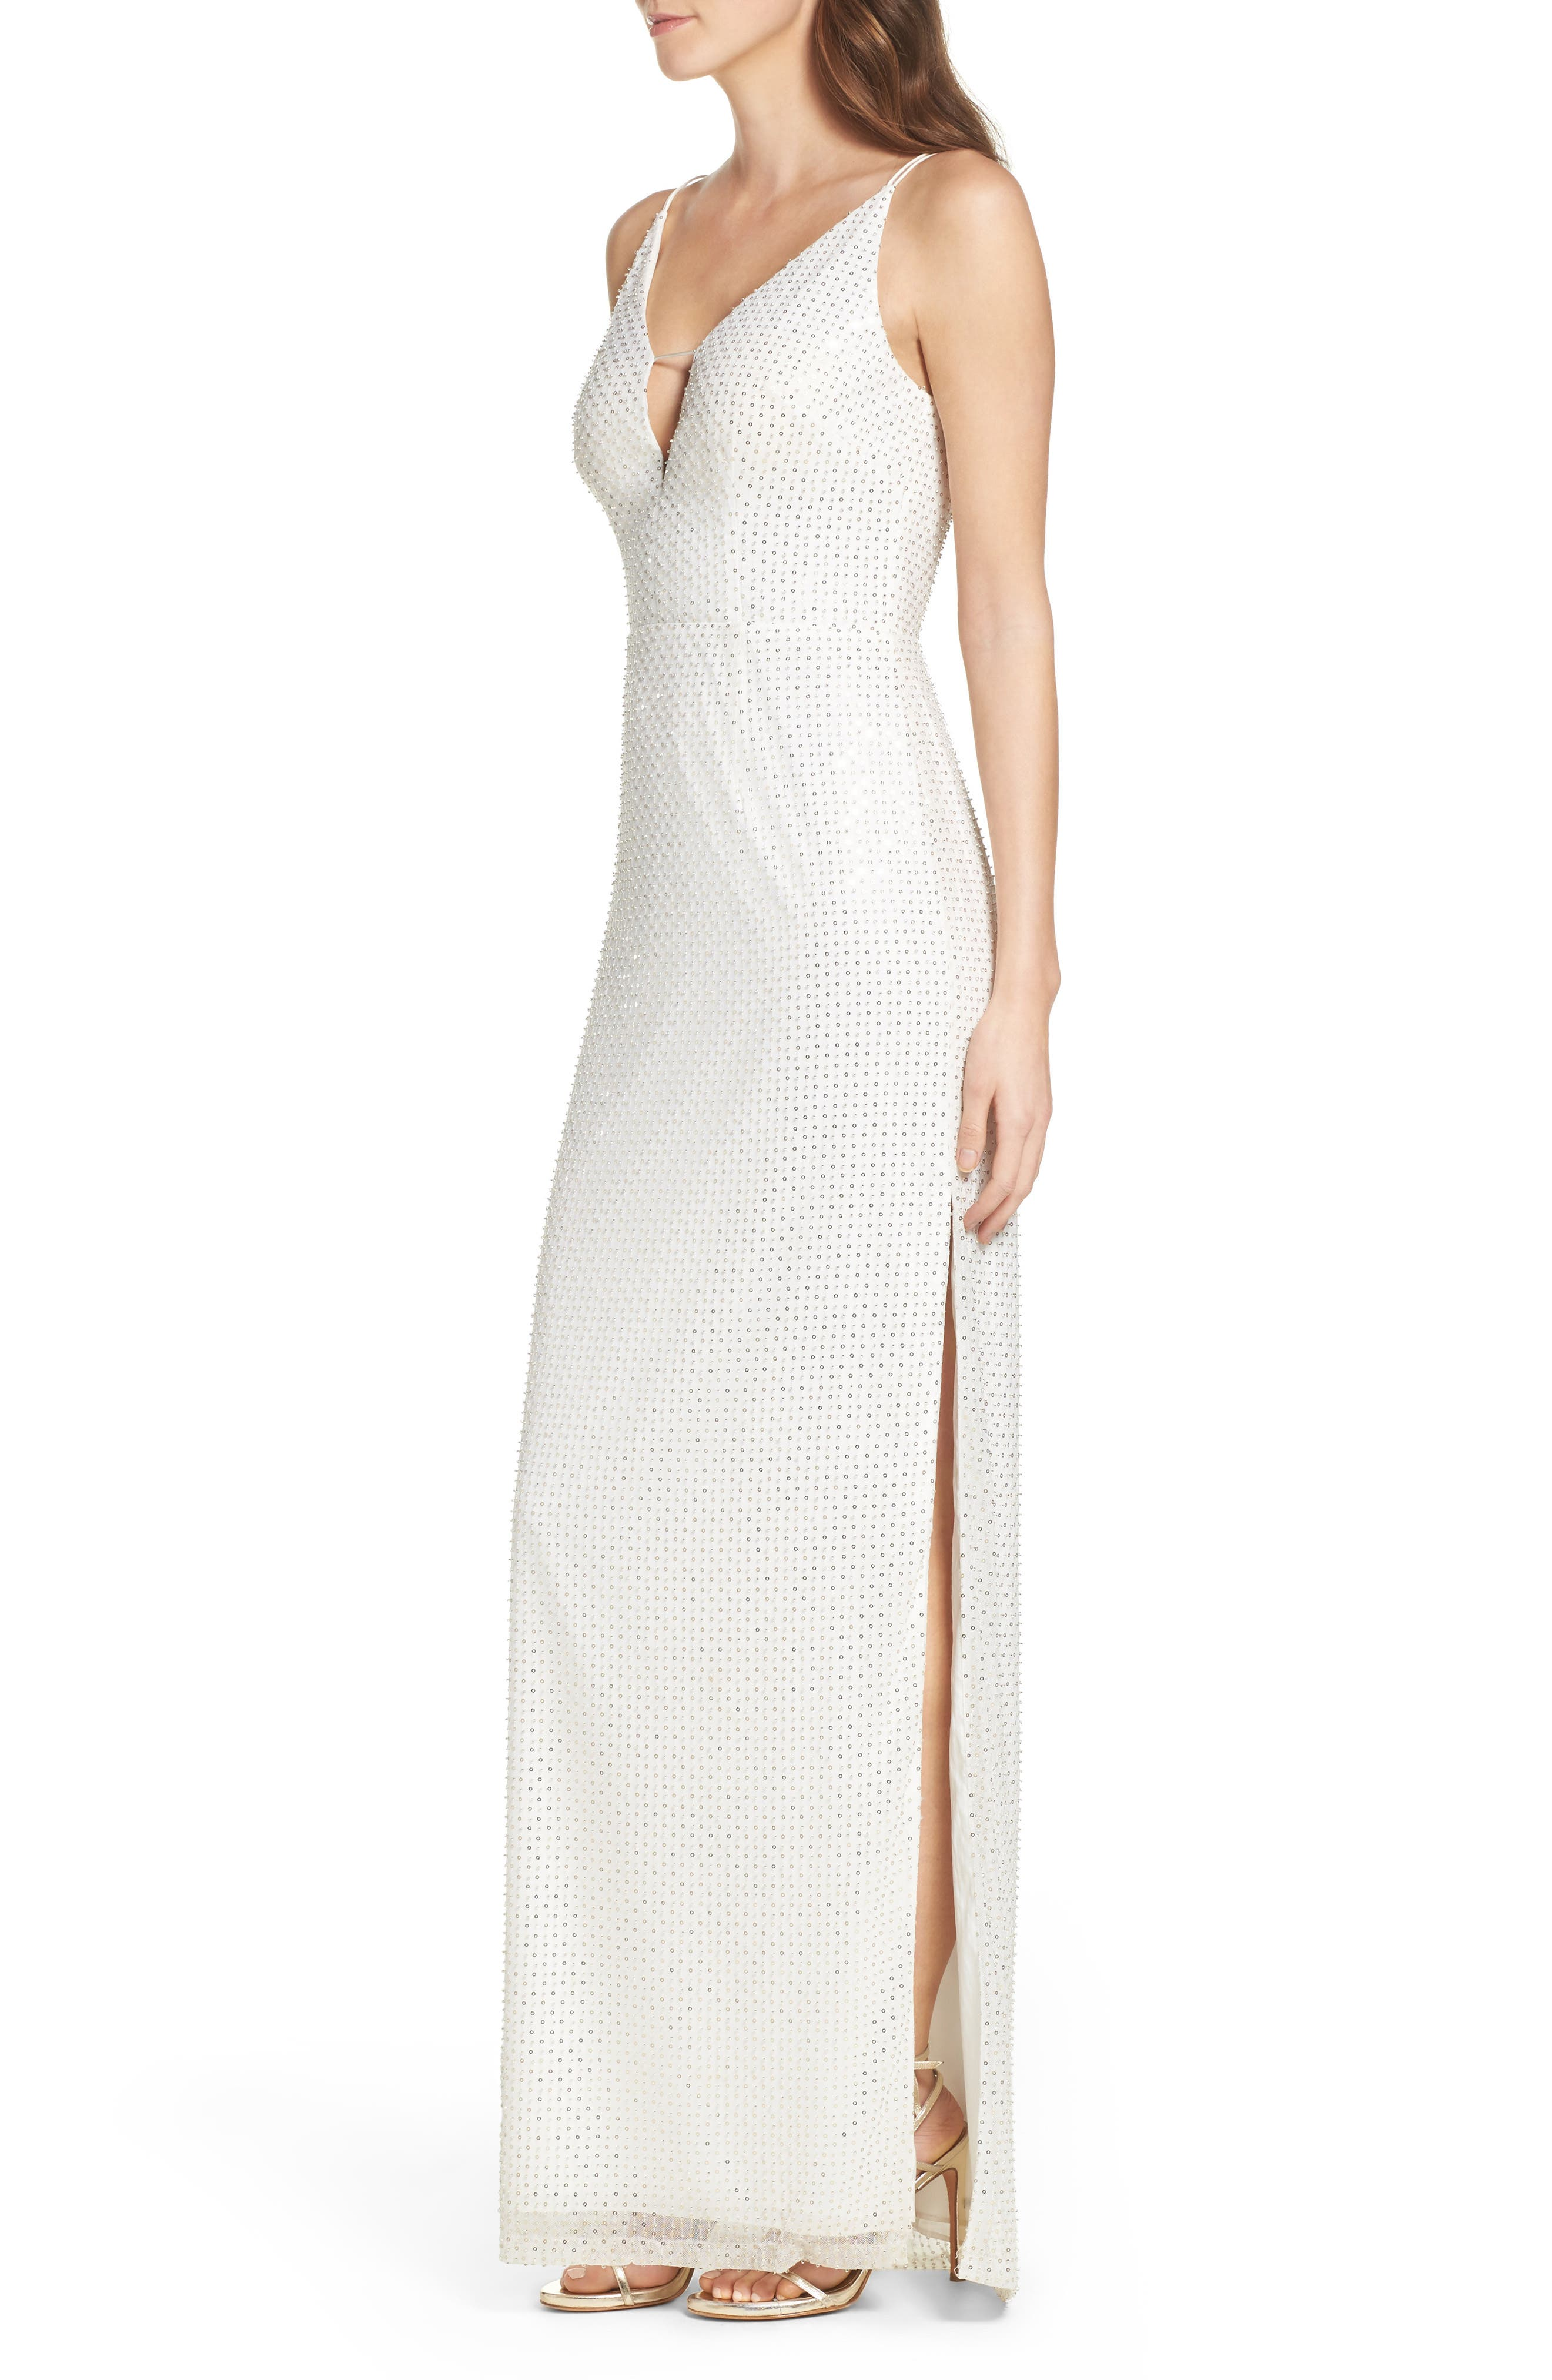 Alternate Image 3  - Aidan by Aidan Mattox Embellished Column Dress